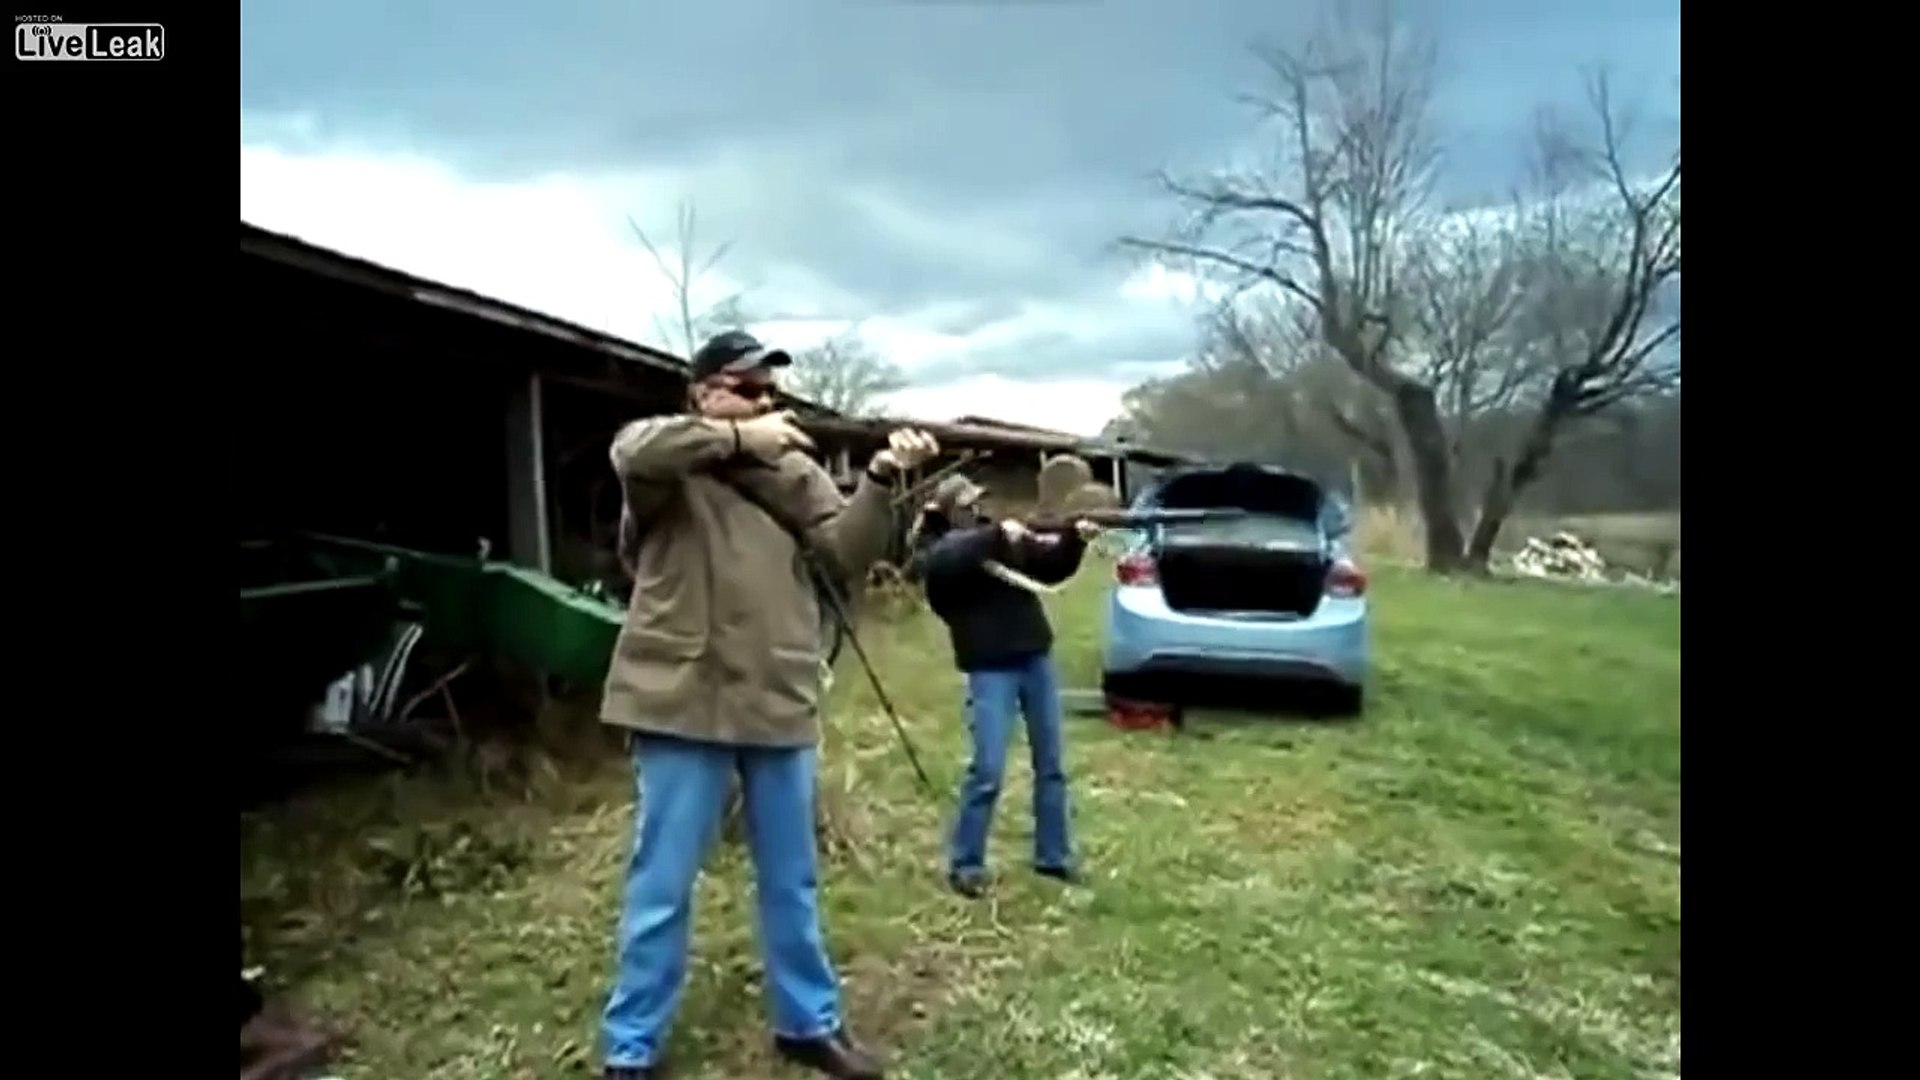 LiveLeak - Rifle Explodes In Girls Hands While Shooting